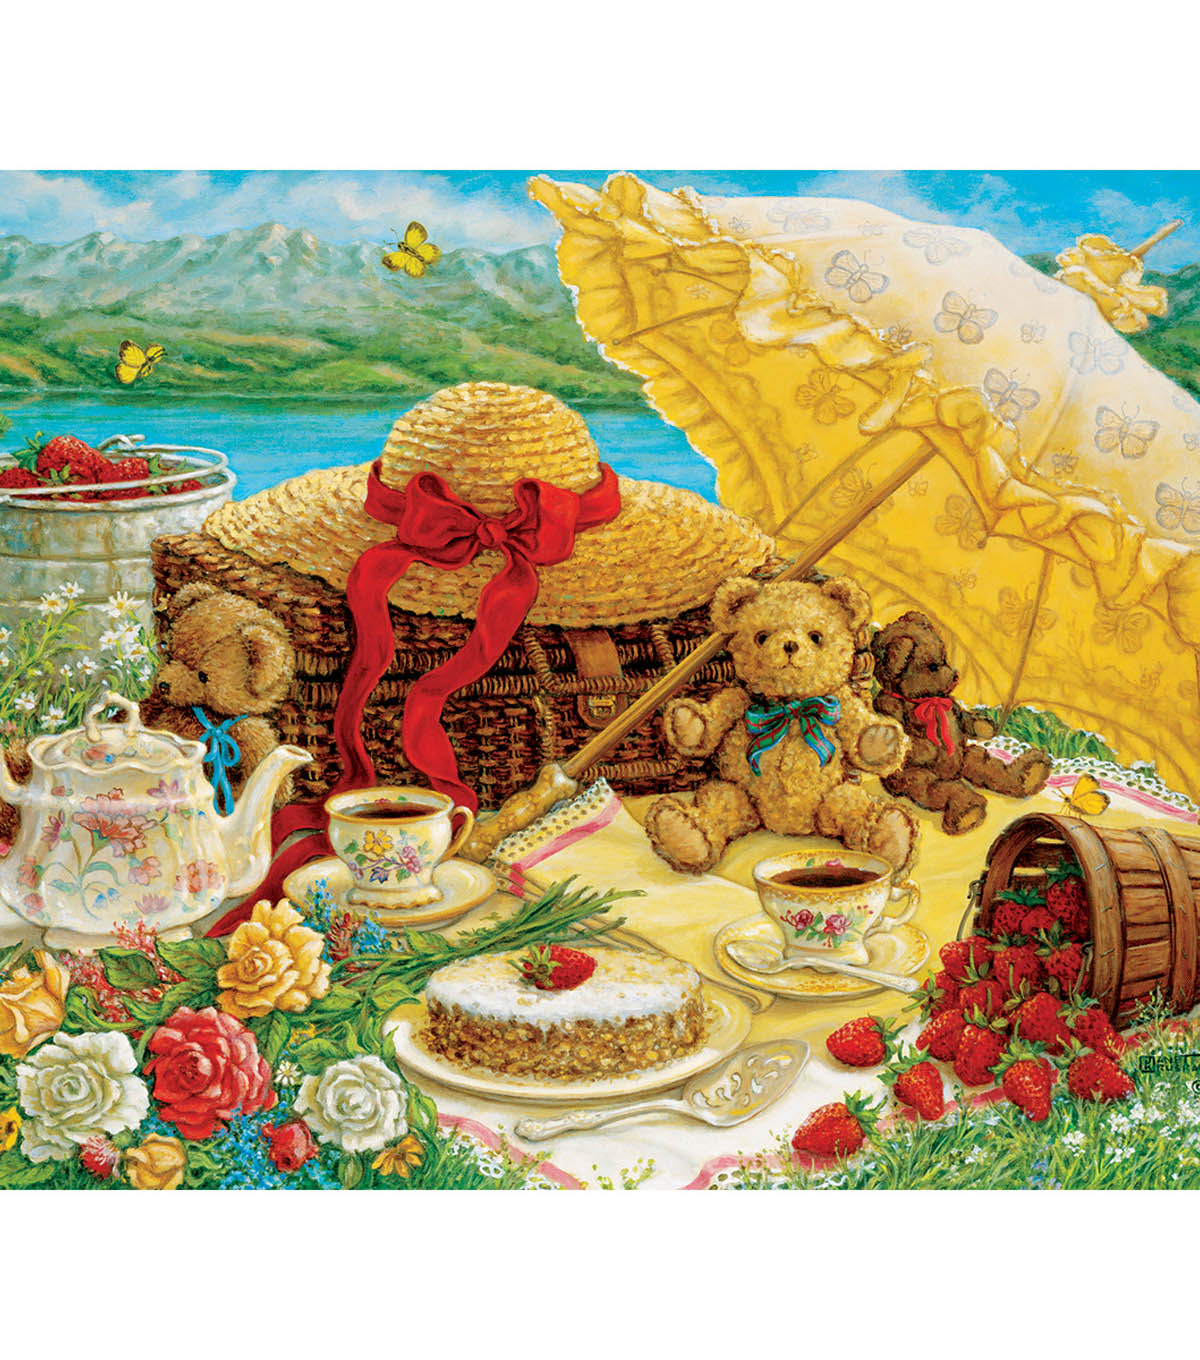 Jigsaw Puzzle 500 Pieces 24\u0022X18\u0022-Teddy Bear Picnic